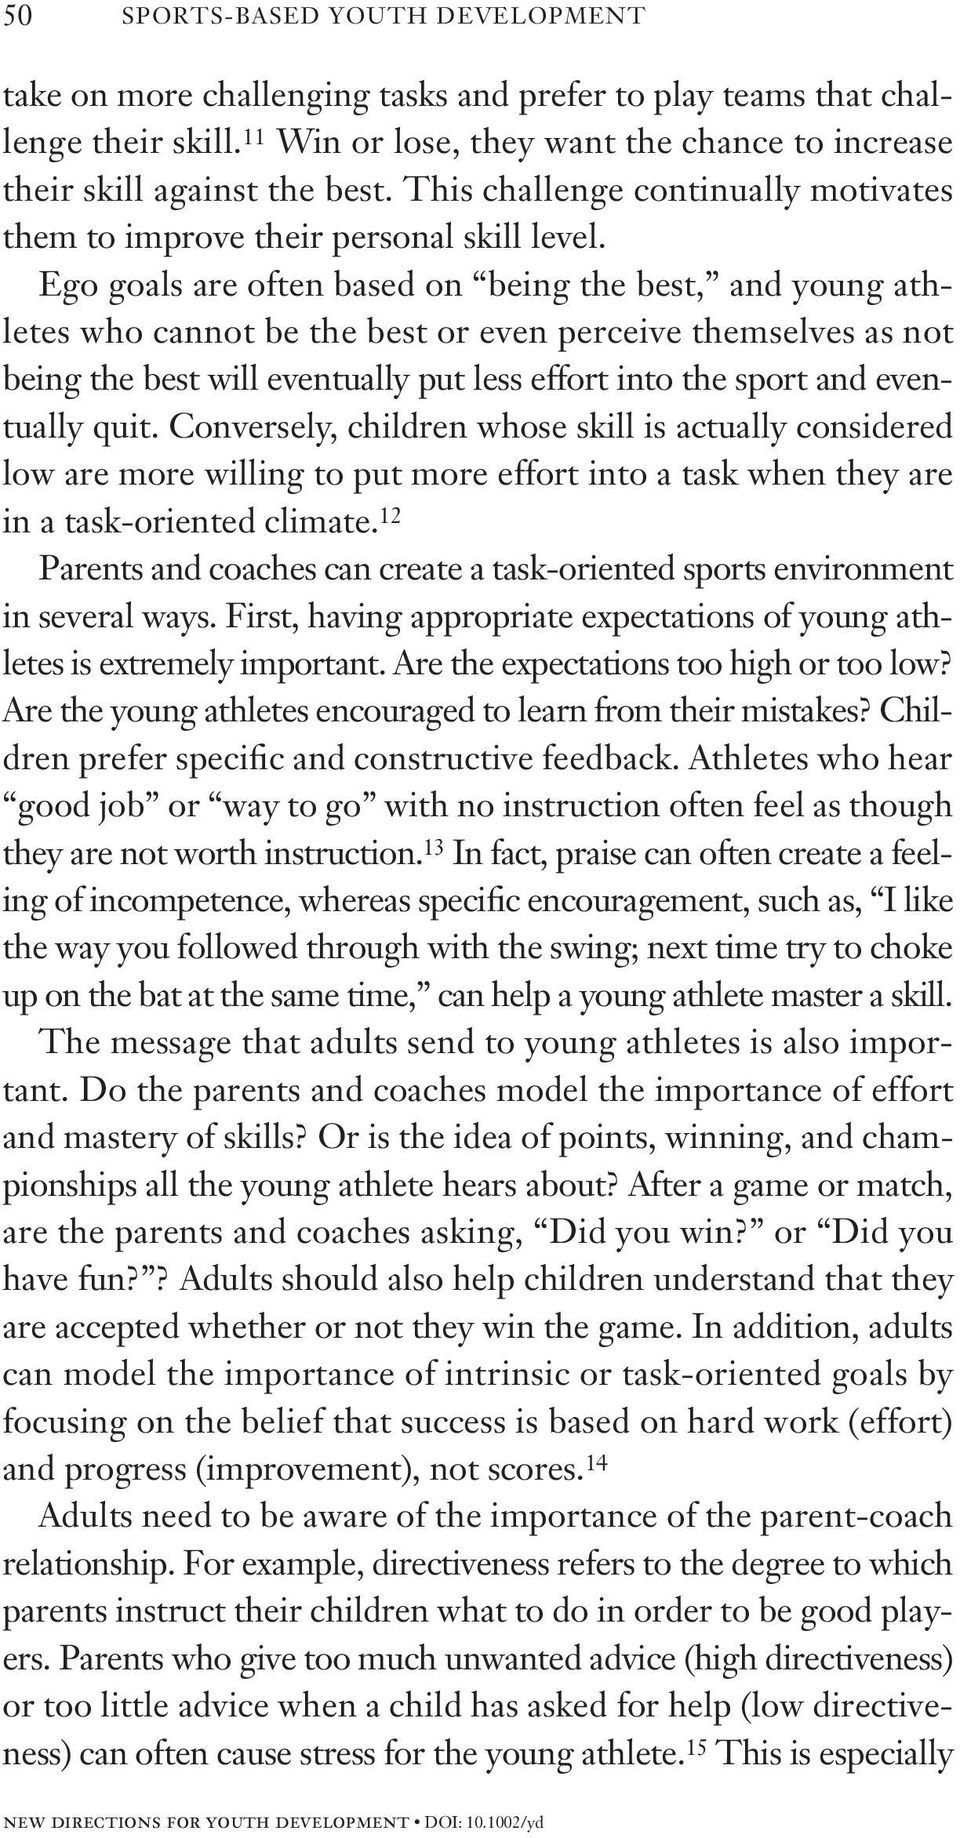 Ego goals are often based on being the best, and young athletes who cannot be the best or even perceive themselves as not being the best will eventually put less effort into the sport and eventually